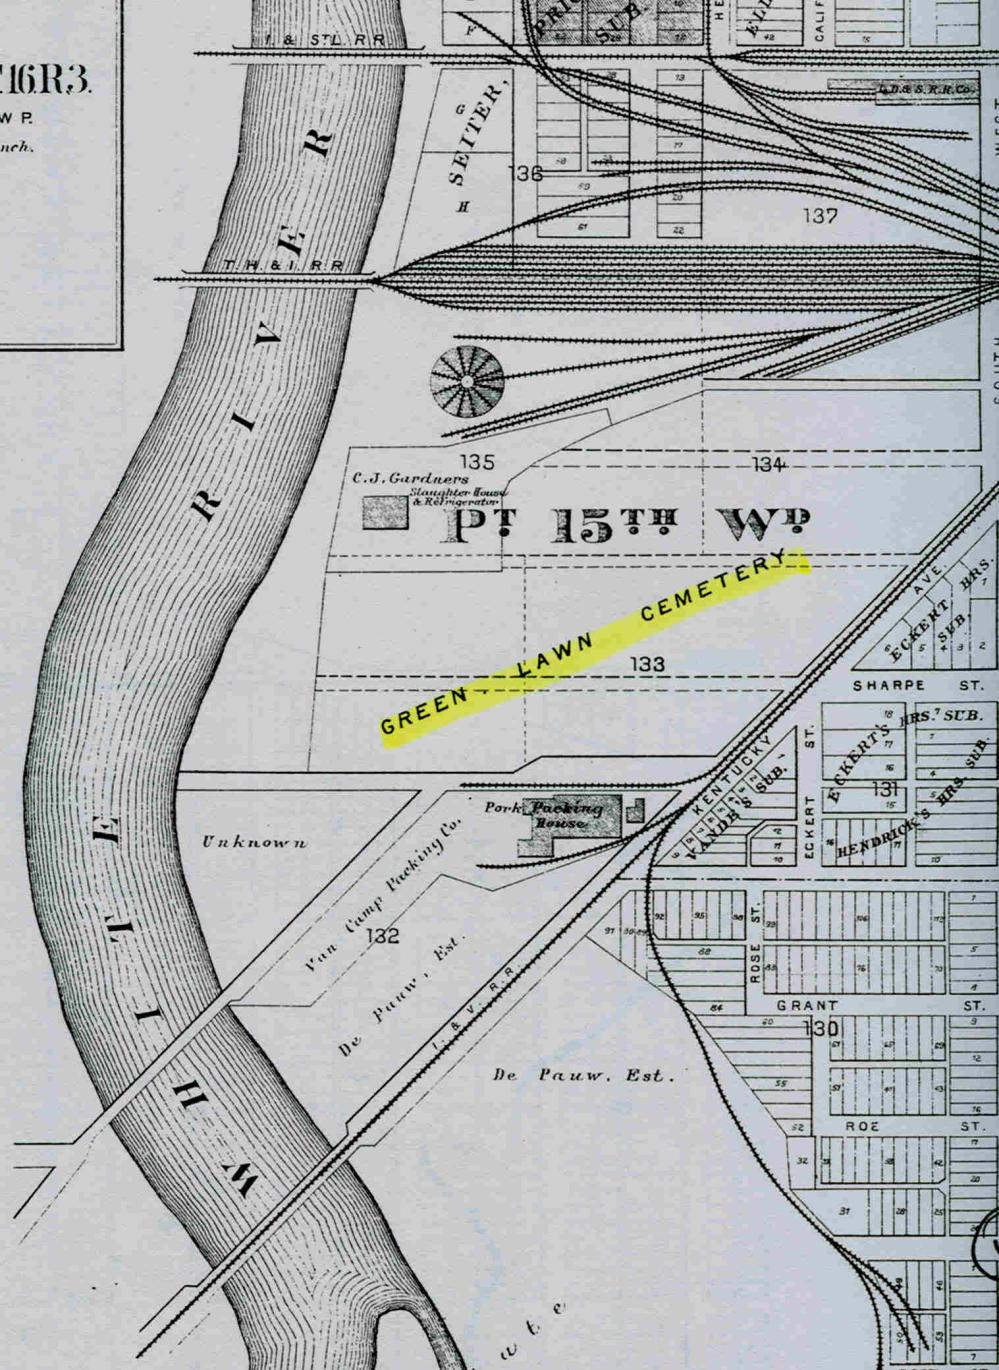 Greenlawn Cemetery map